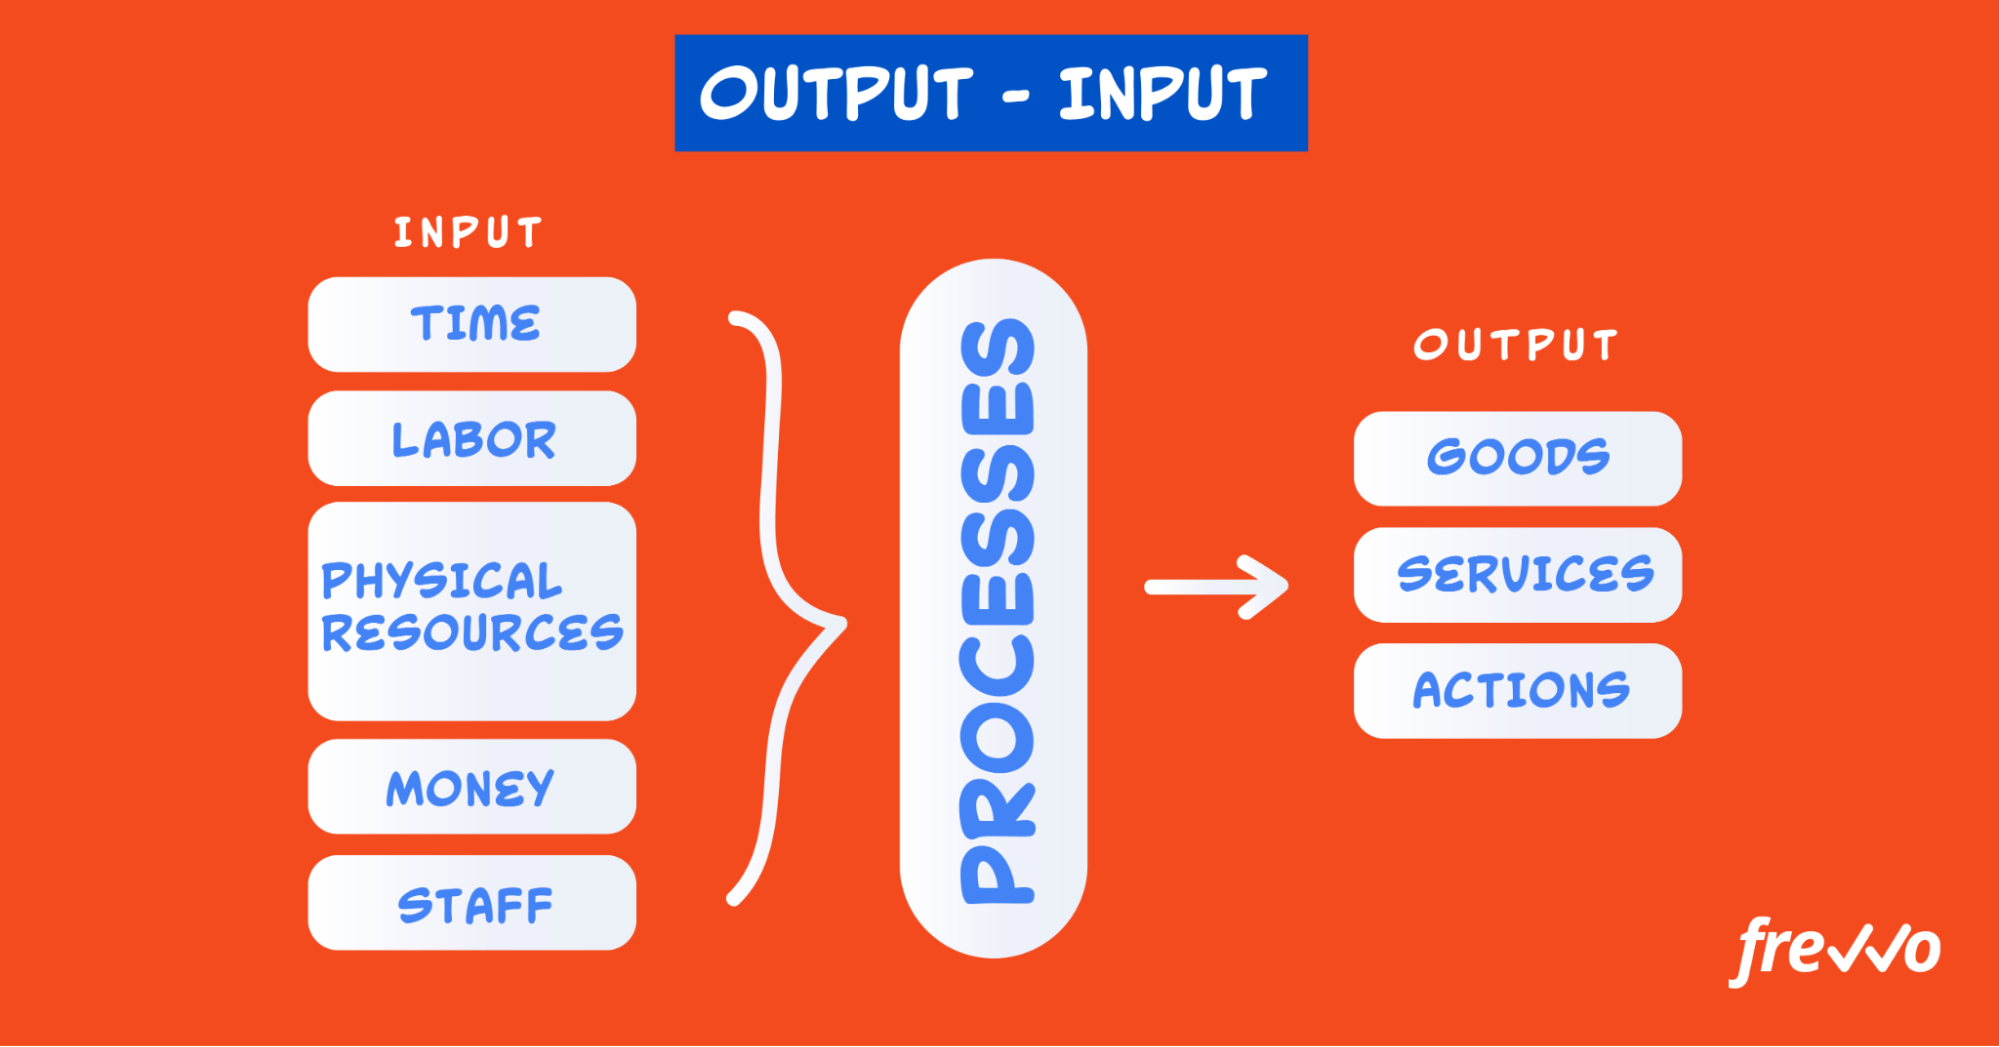 Inputs and outputs of process